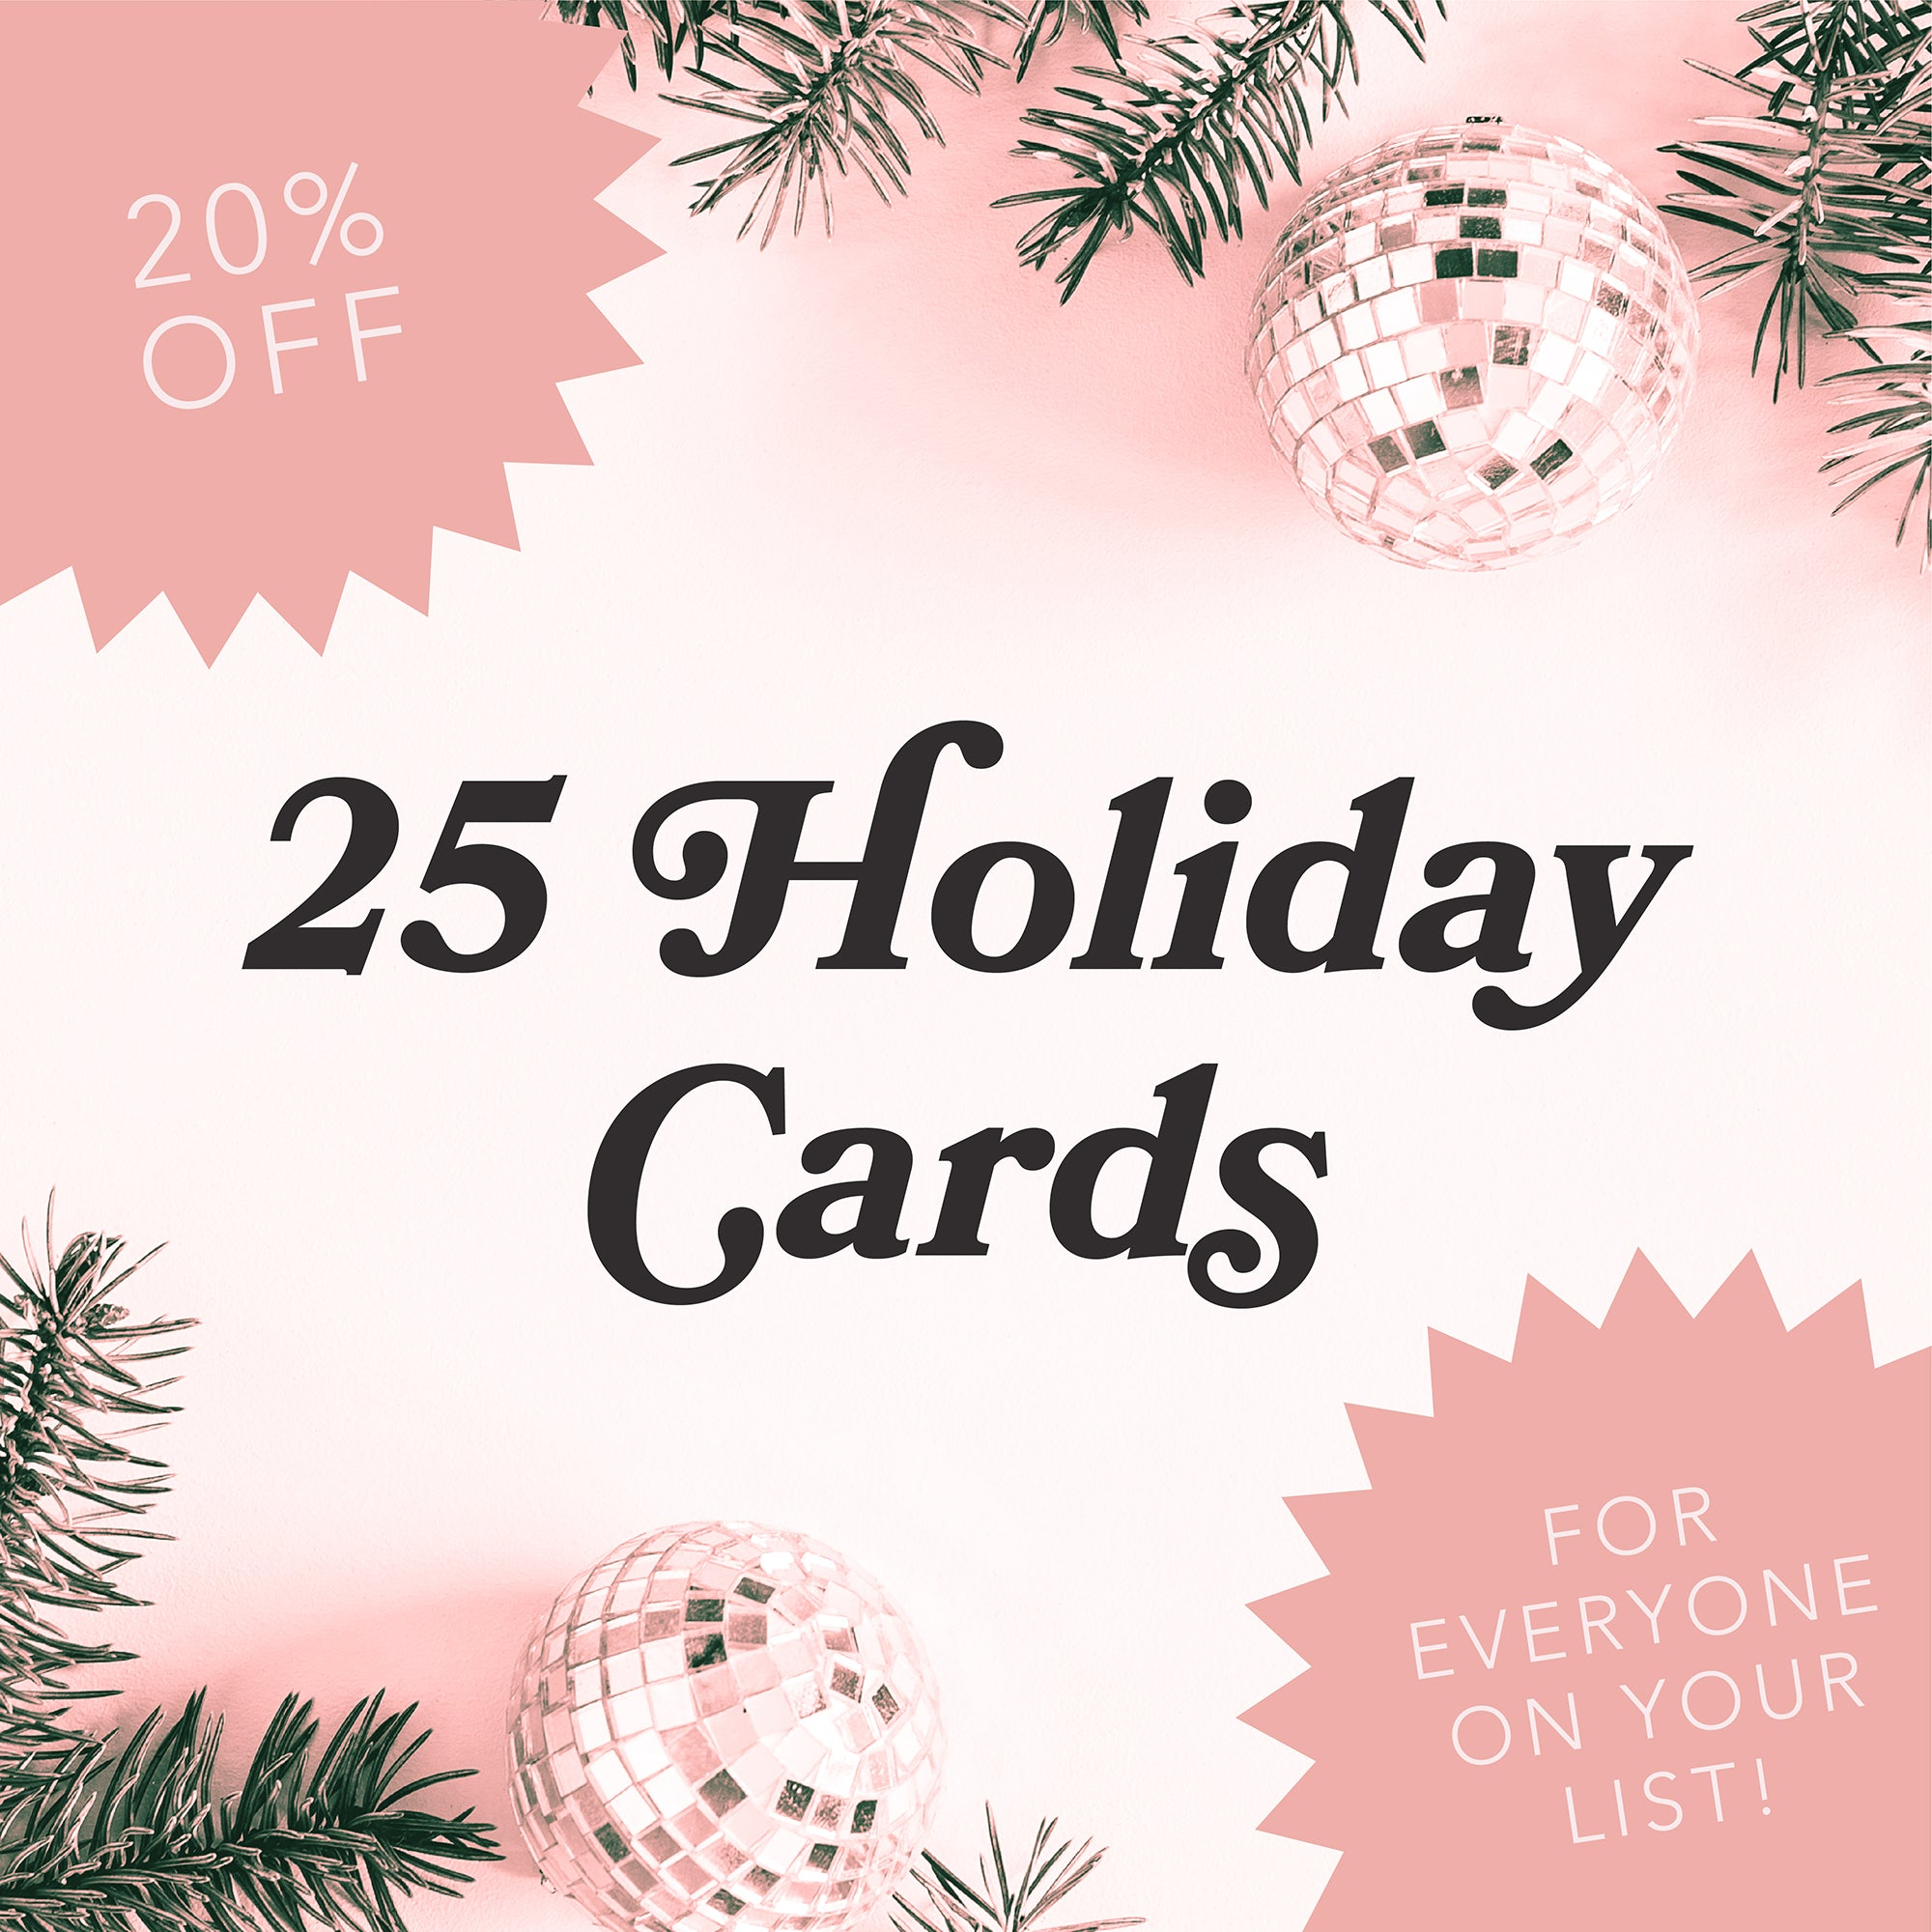 25 Holiday Cards